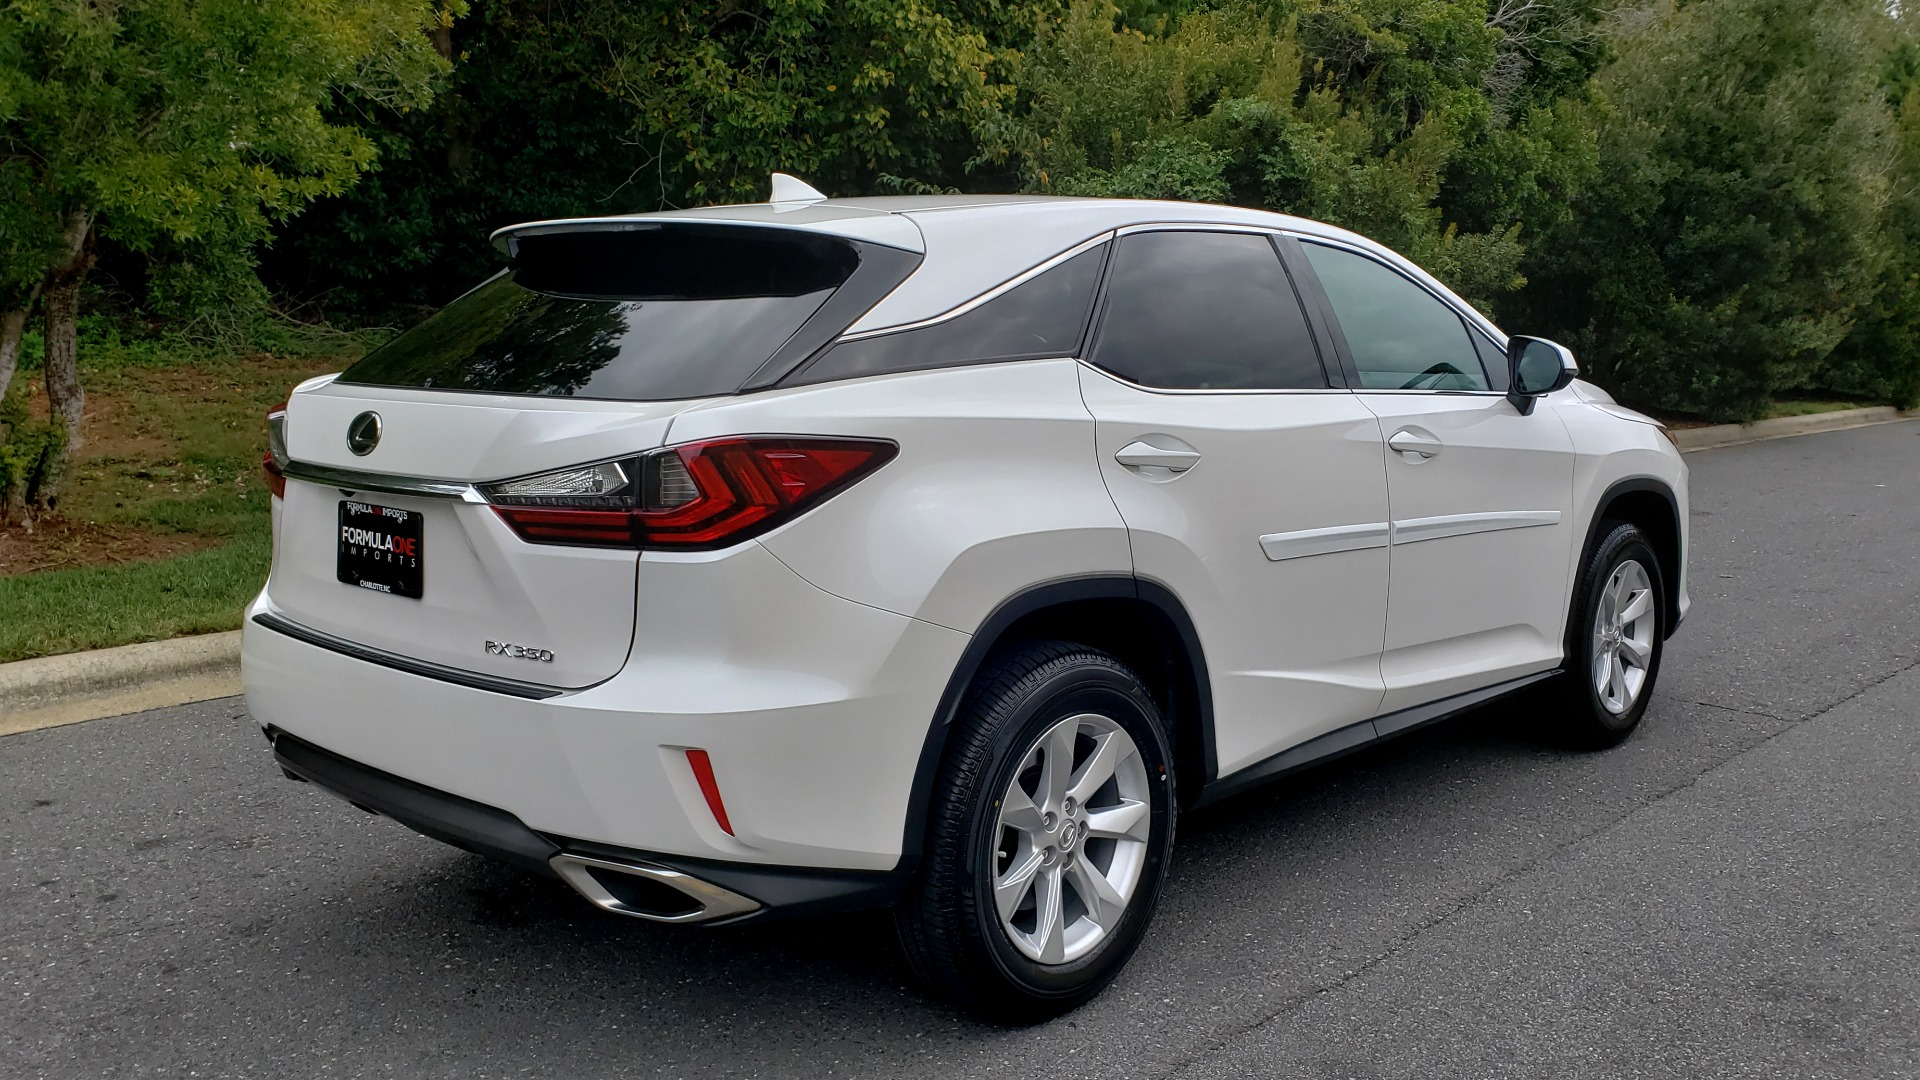 Used 2016 Lexus RX 350 FWD / 4-DR / 3.5L V6 / 8-SPD AUTO / LEATHER / REARVIEW for sale Sold at Formula Imports in Charlotte NC 28227 3